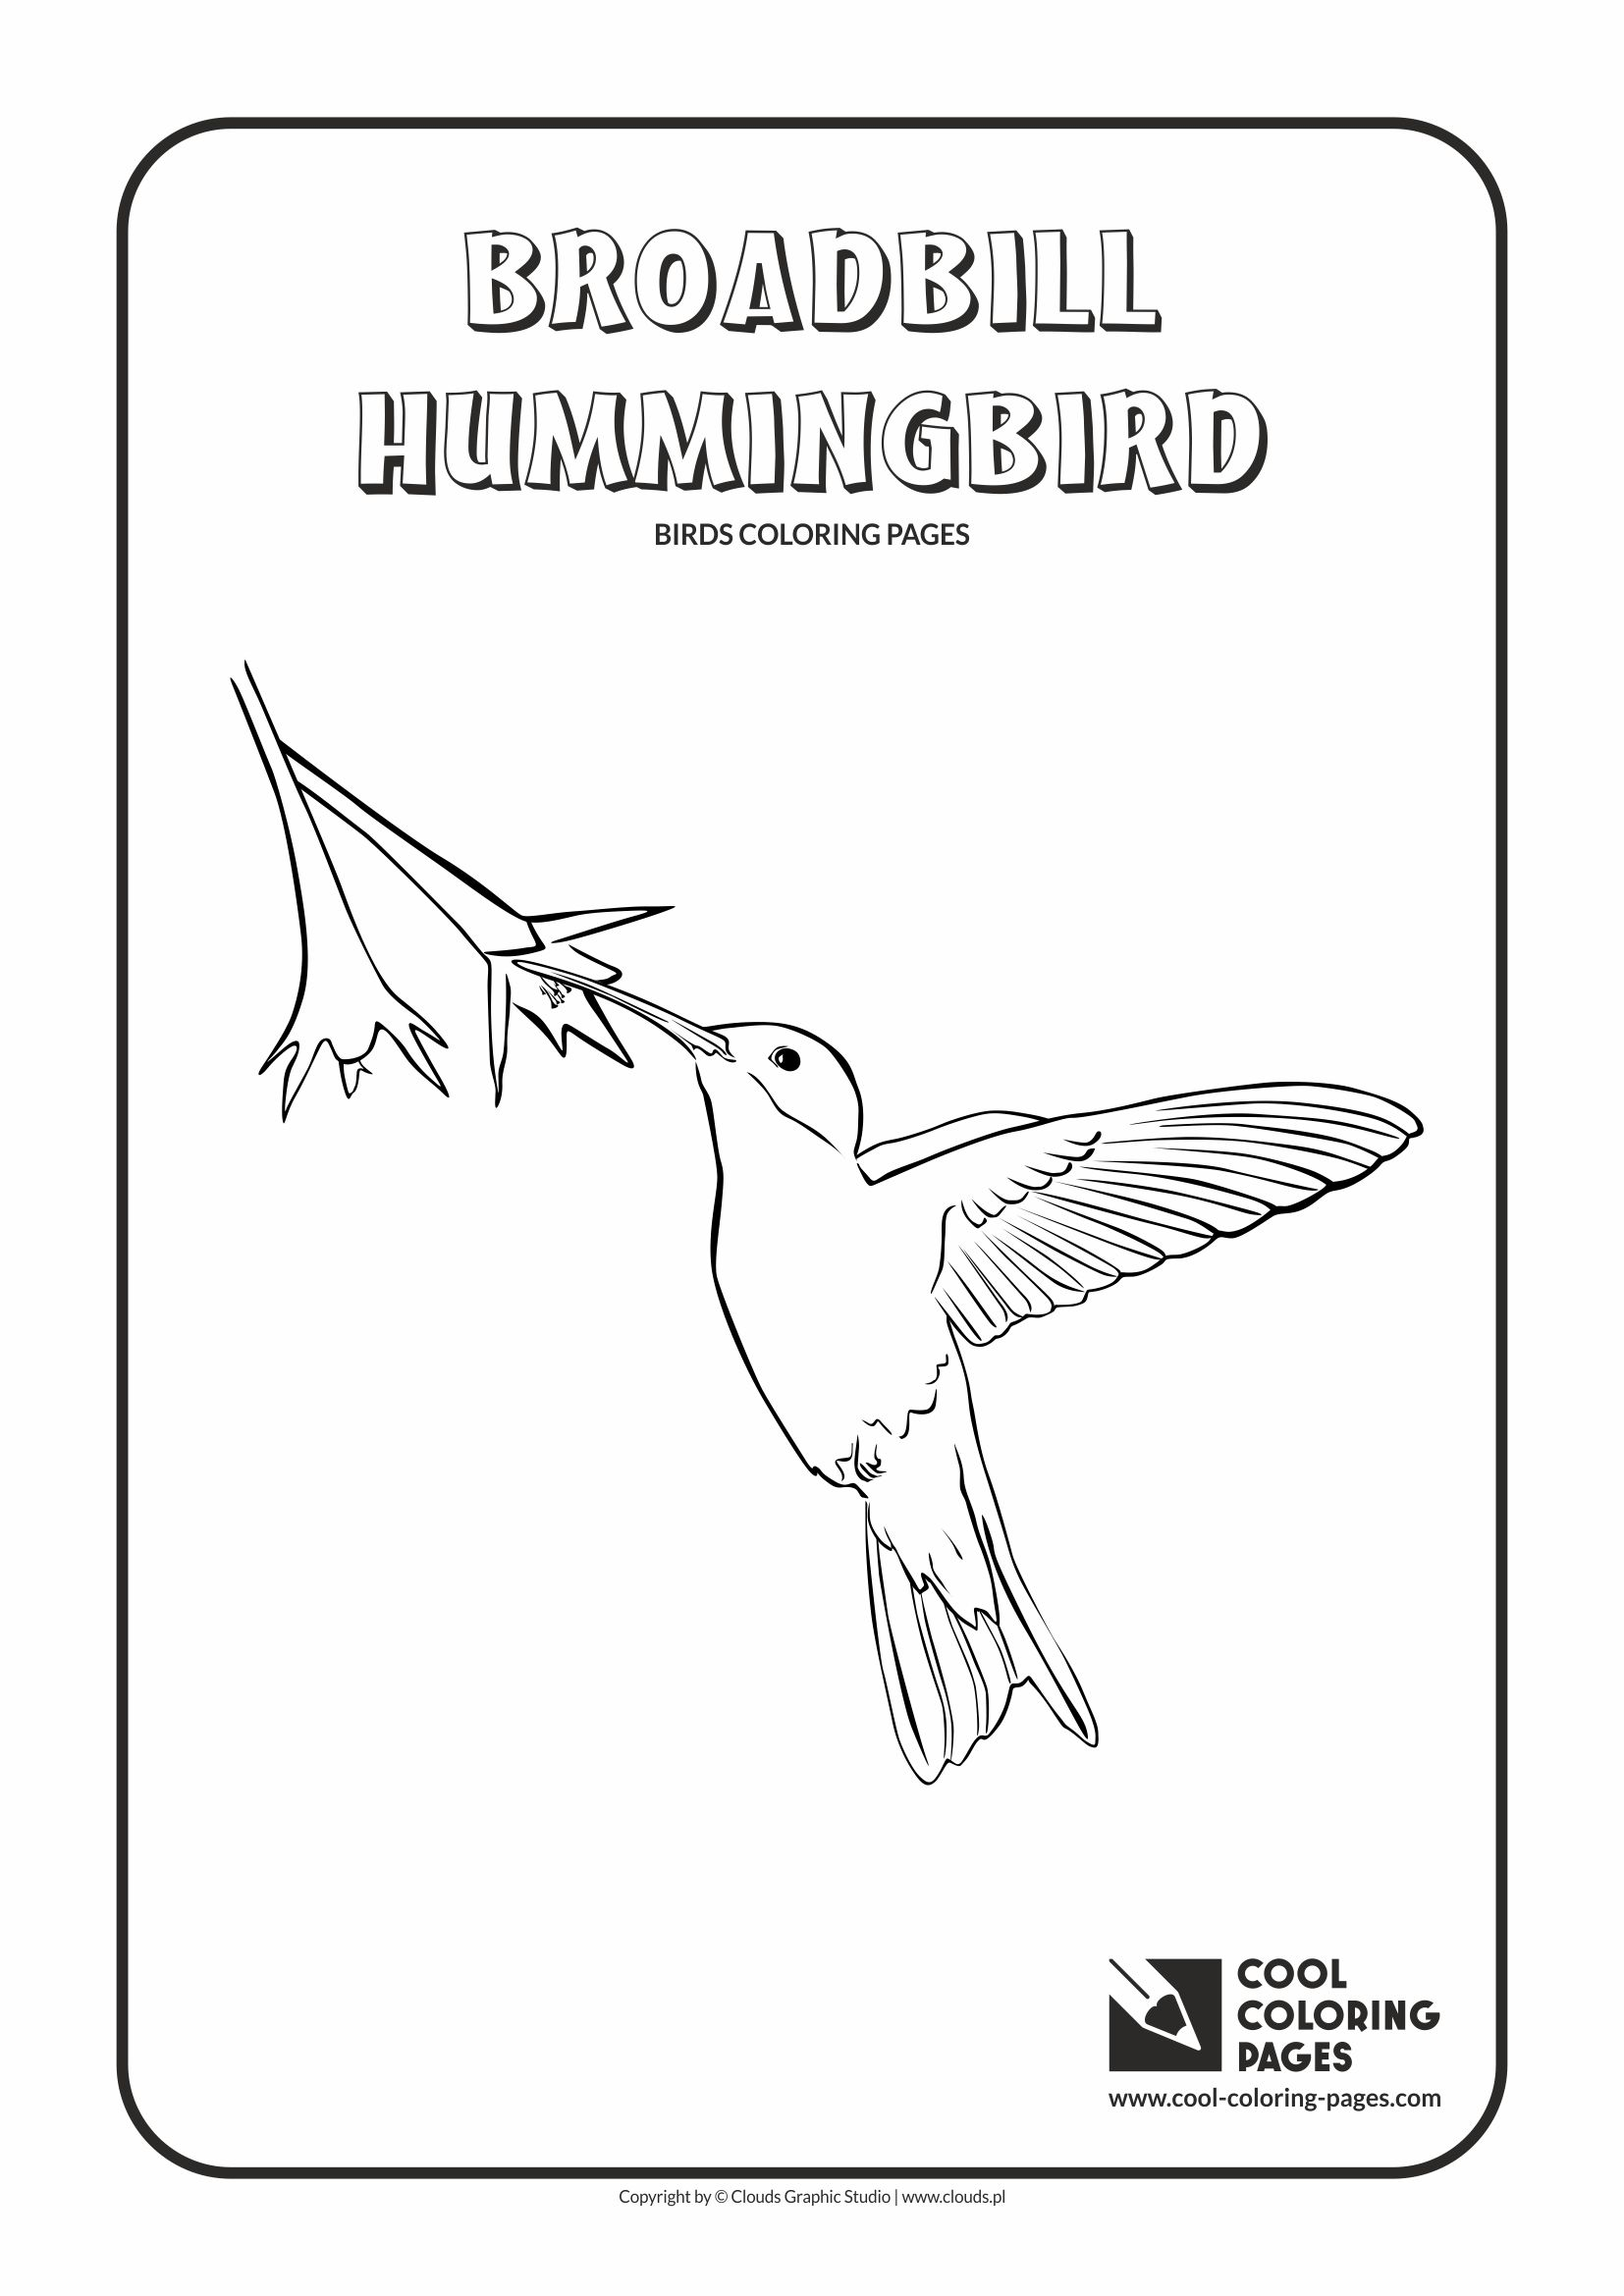 Cool Coloring Pages - Animals / Broadbill hummingbird / Coloring page with broadbill hummingbird